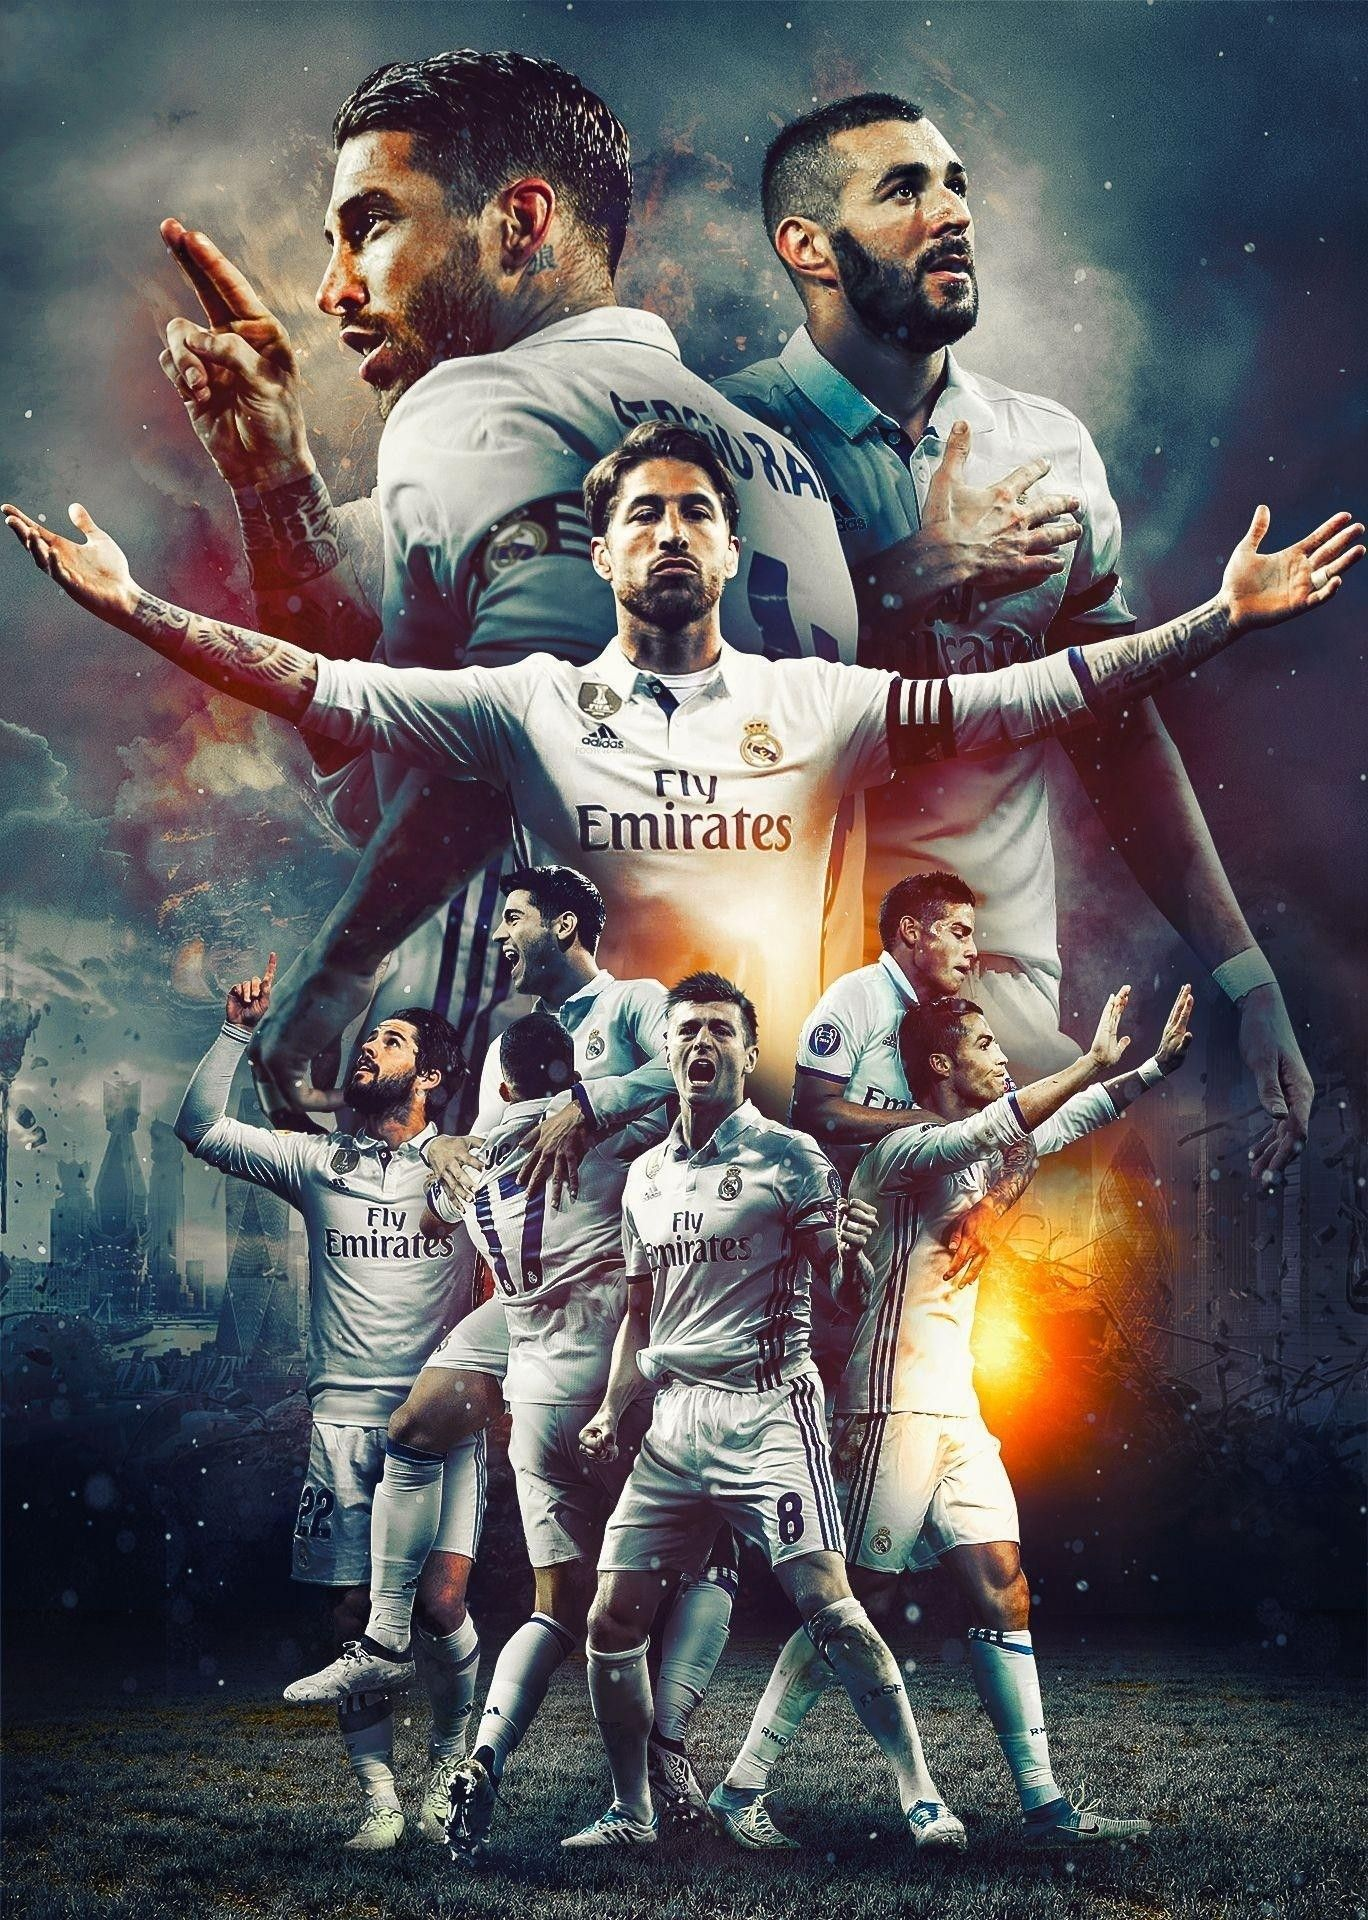 Real Madrid Wallpaper Hd 2019 Hd Football In 2020 Real Madrid Wallpapers Ronaldo Real Madrid Real Madrid Football